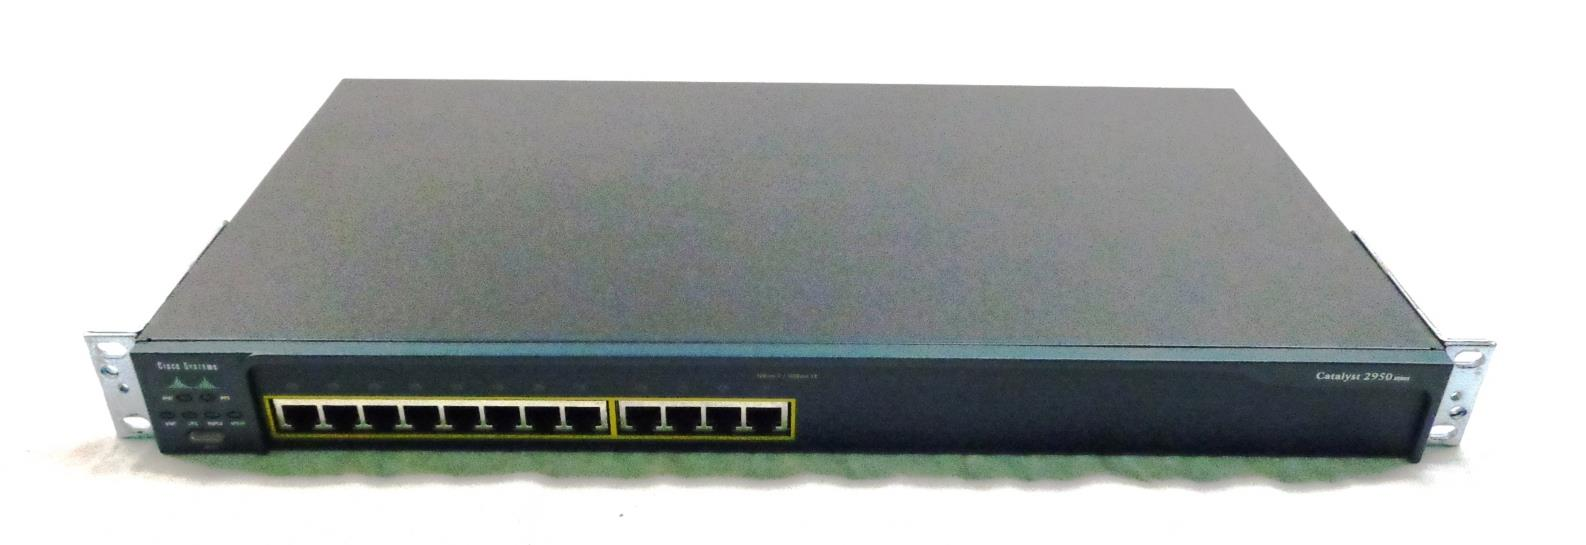 Cisco Catalyst 2950 Series Switches Specifications The Last Dragon Intervlan Routing With 3750 3560 3550 Intelligent Ethernet Offer Enhanced Data